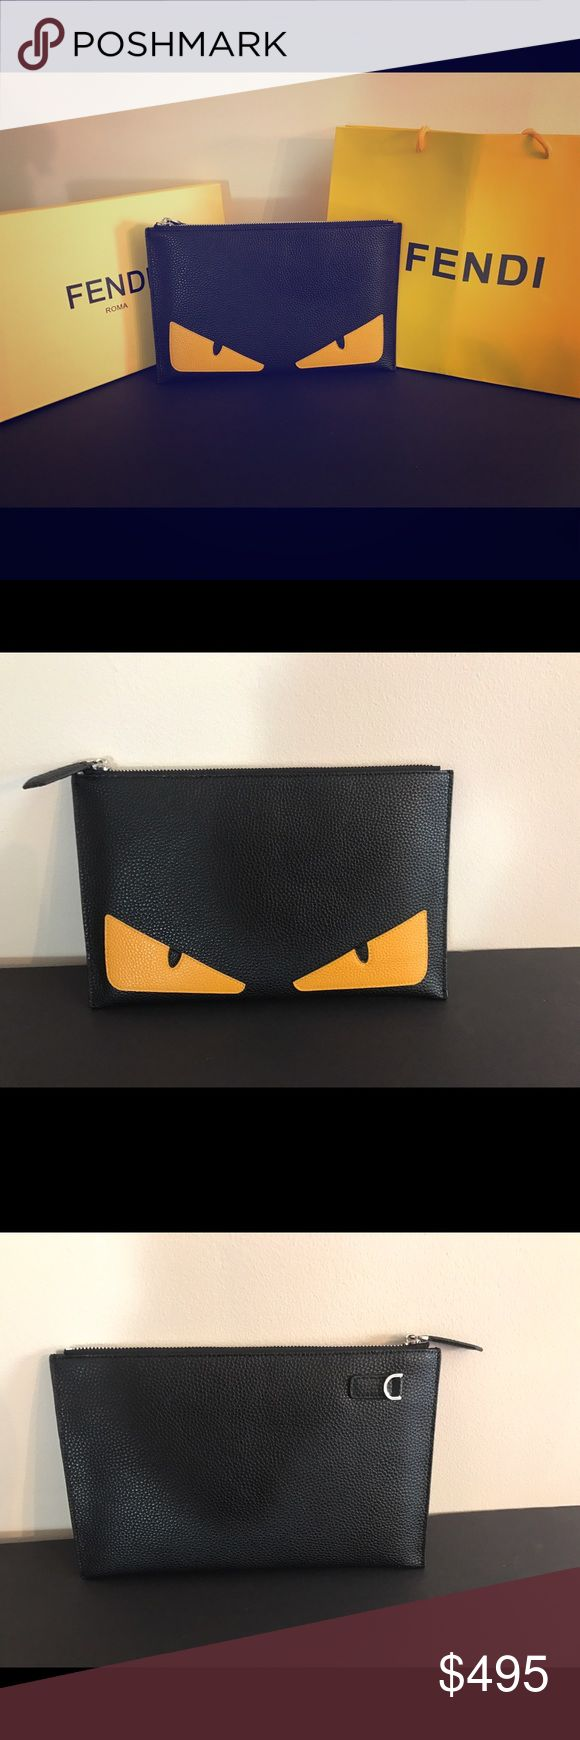 "Fendi monster black leather clutch bag Fendi monster clutch ! Unisex ! Clutch is new and comes with original box and shopping bag . Also has original sales memo . Purchased from fendi outlet . Bag is in mint condition , however inside of bag does have slight moth ball odor , I am working on fixing this and after usage it will likely dissipate . Offered here at great discount ! Measures 11"" x 7"" comes with attachable wristlet strap . Fendi Bags Clutches & Wristlets"